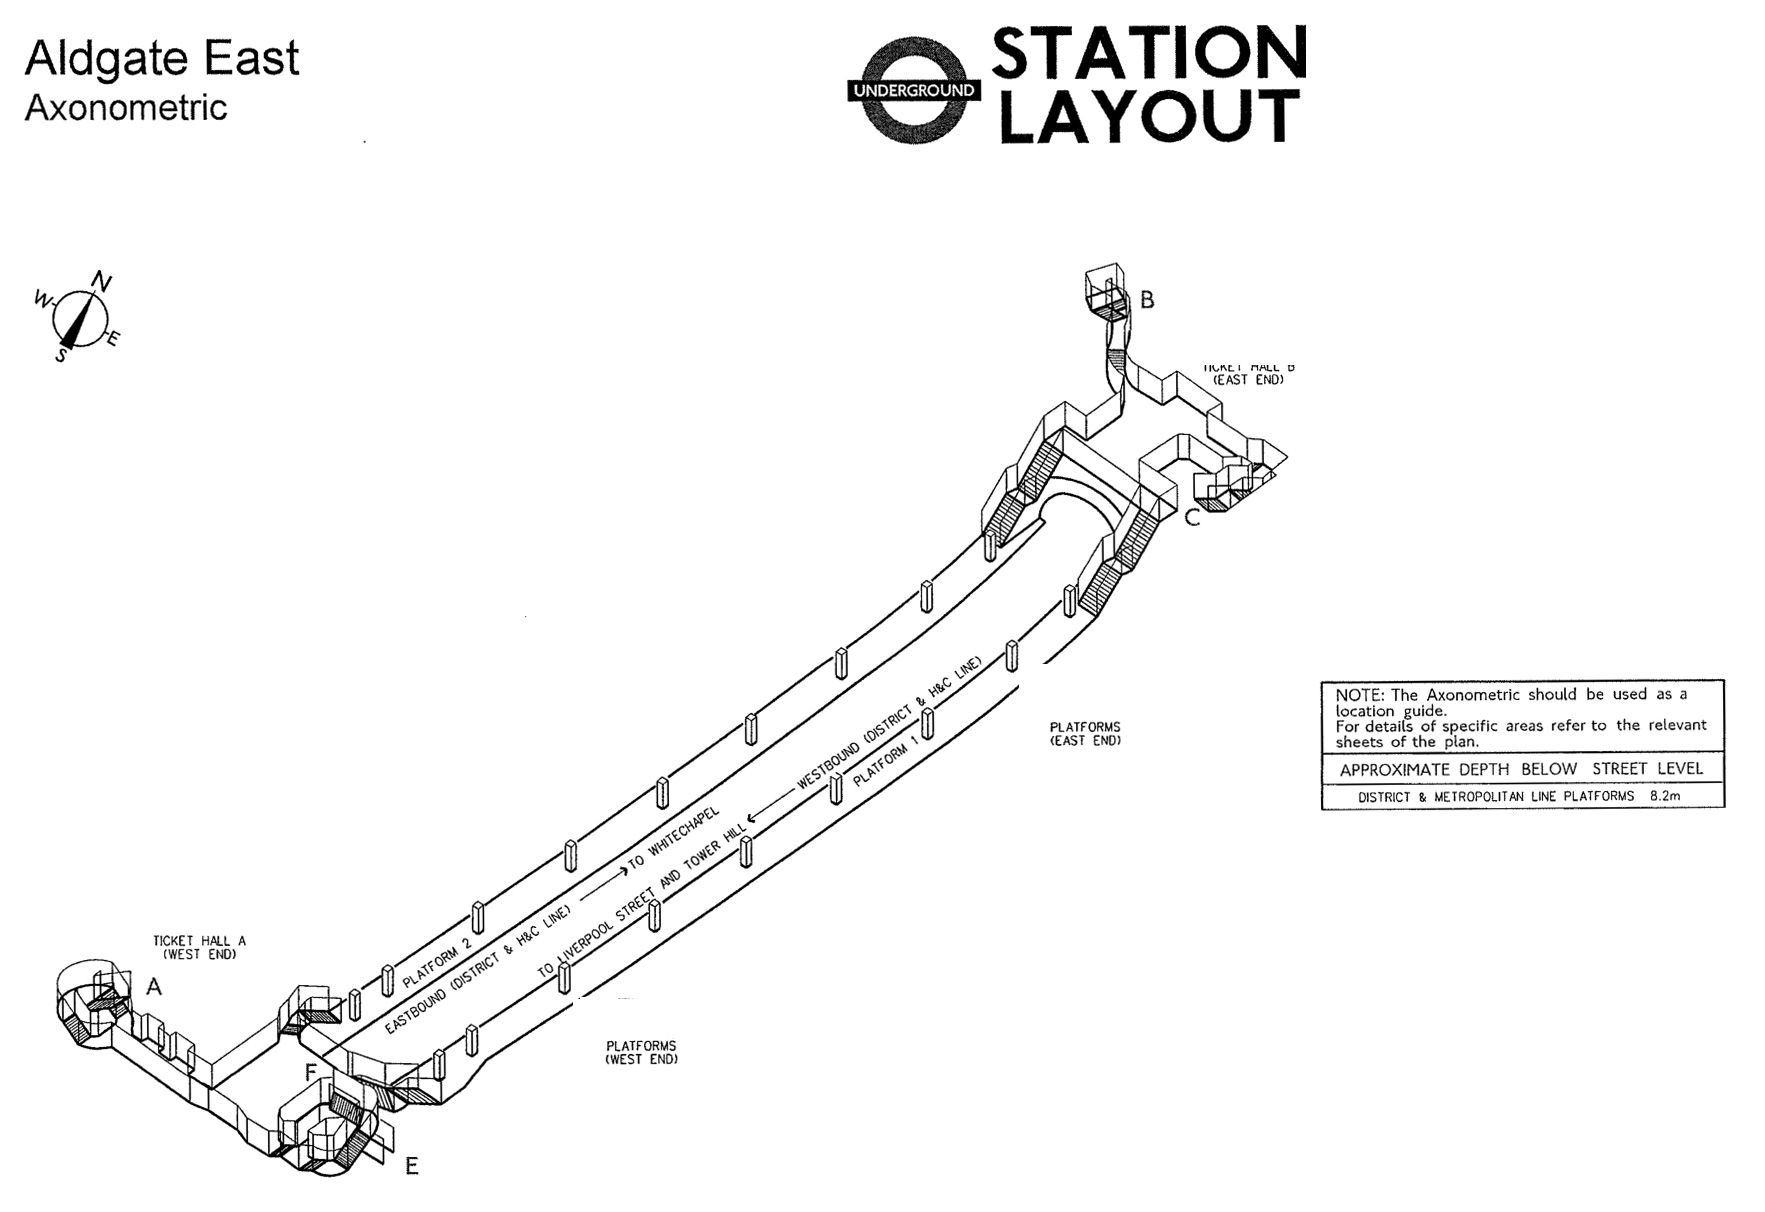 3d Maps Of Every Underground Station